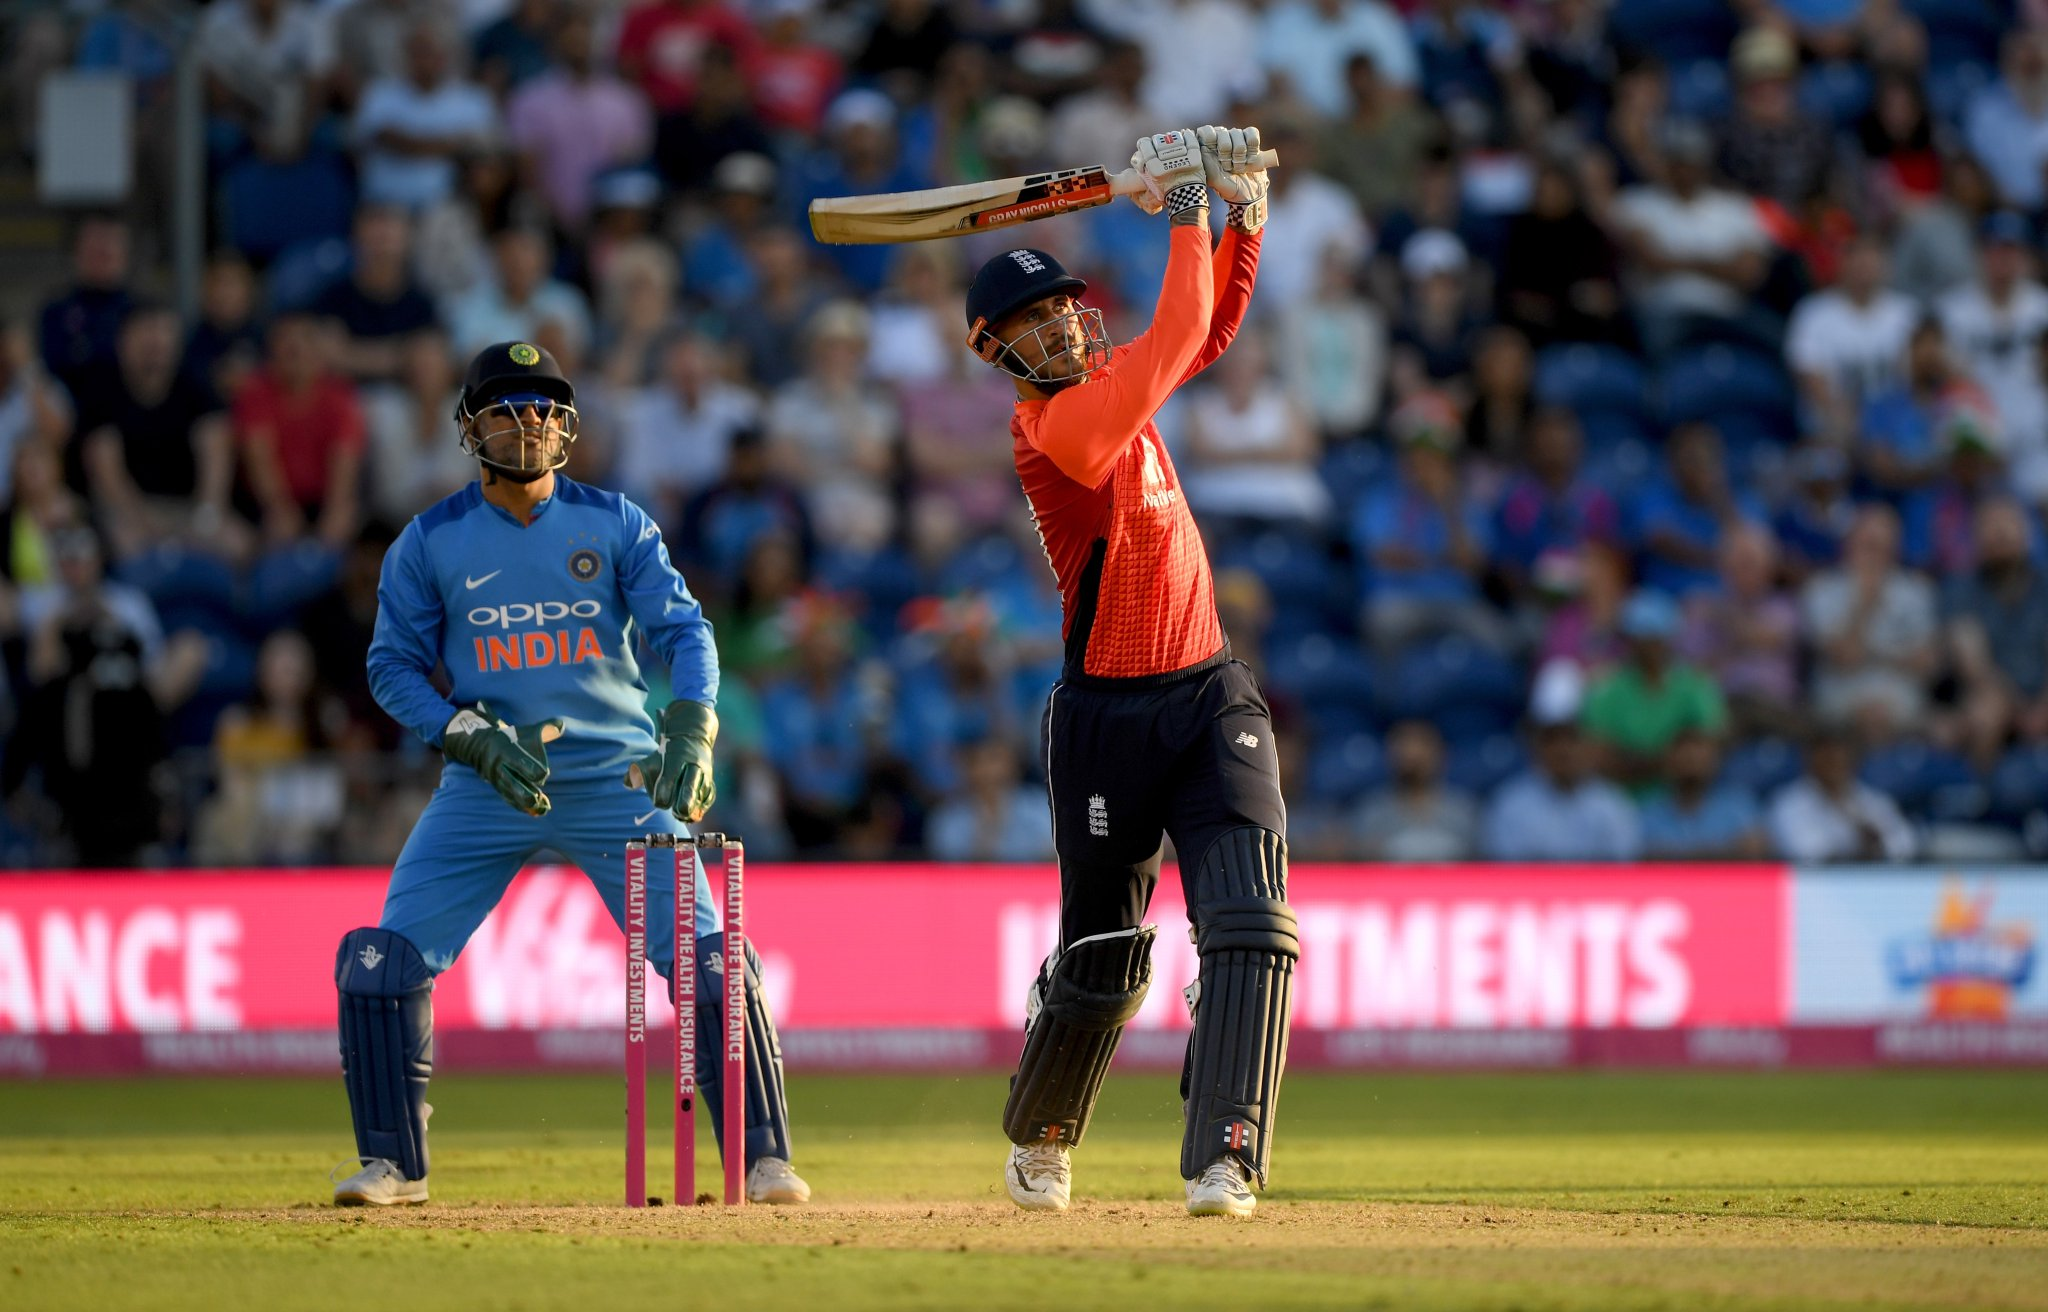 England's innings from Hales's innings